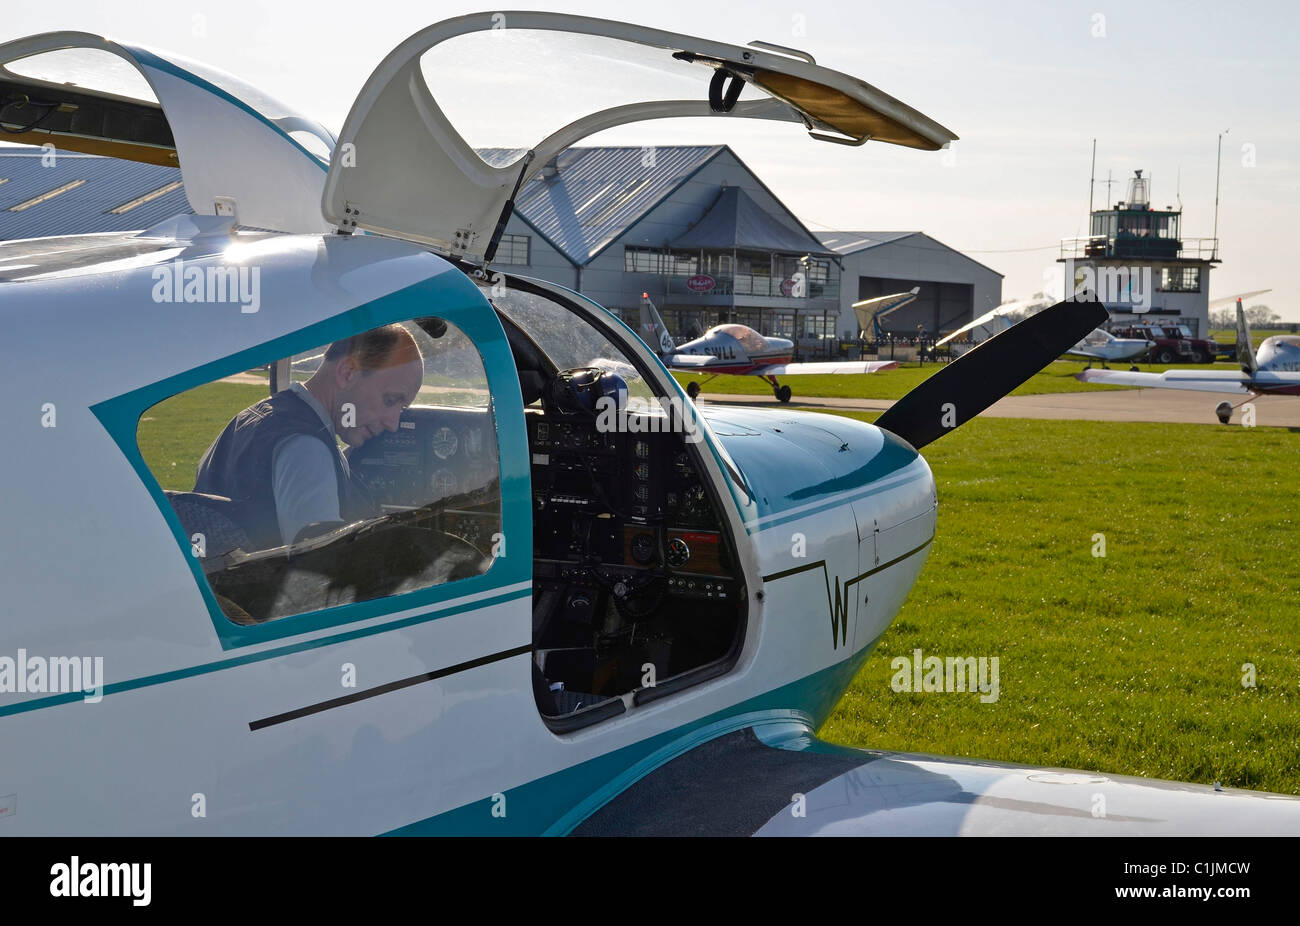 private pilot preparing light aircraft at sywell airfield - Stock Image